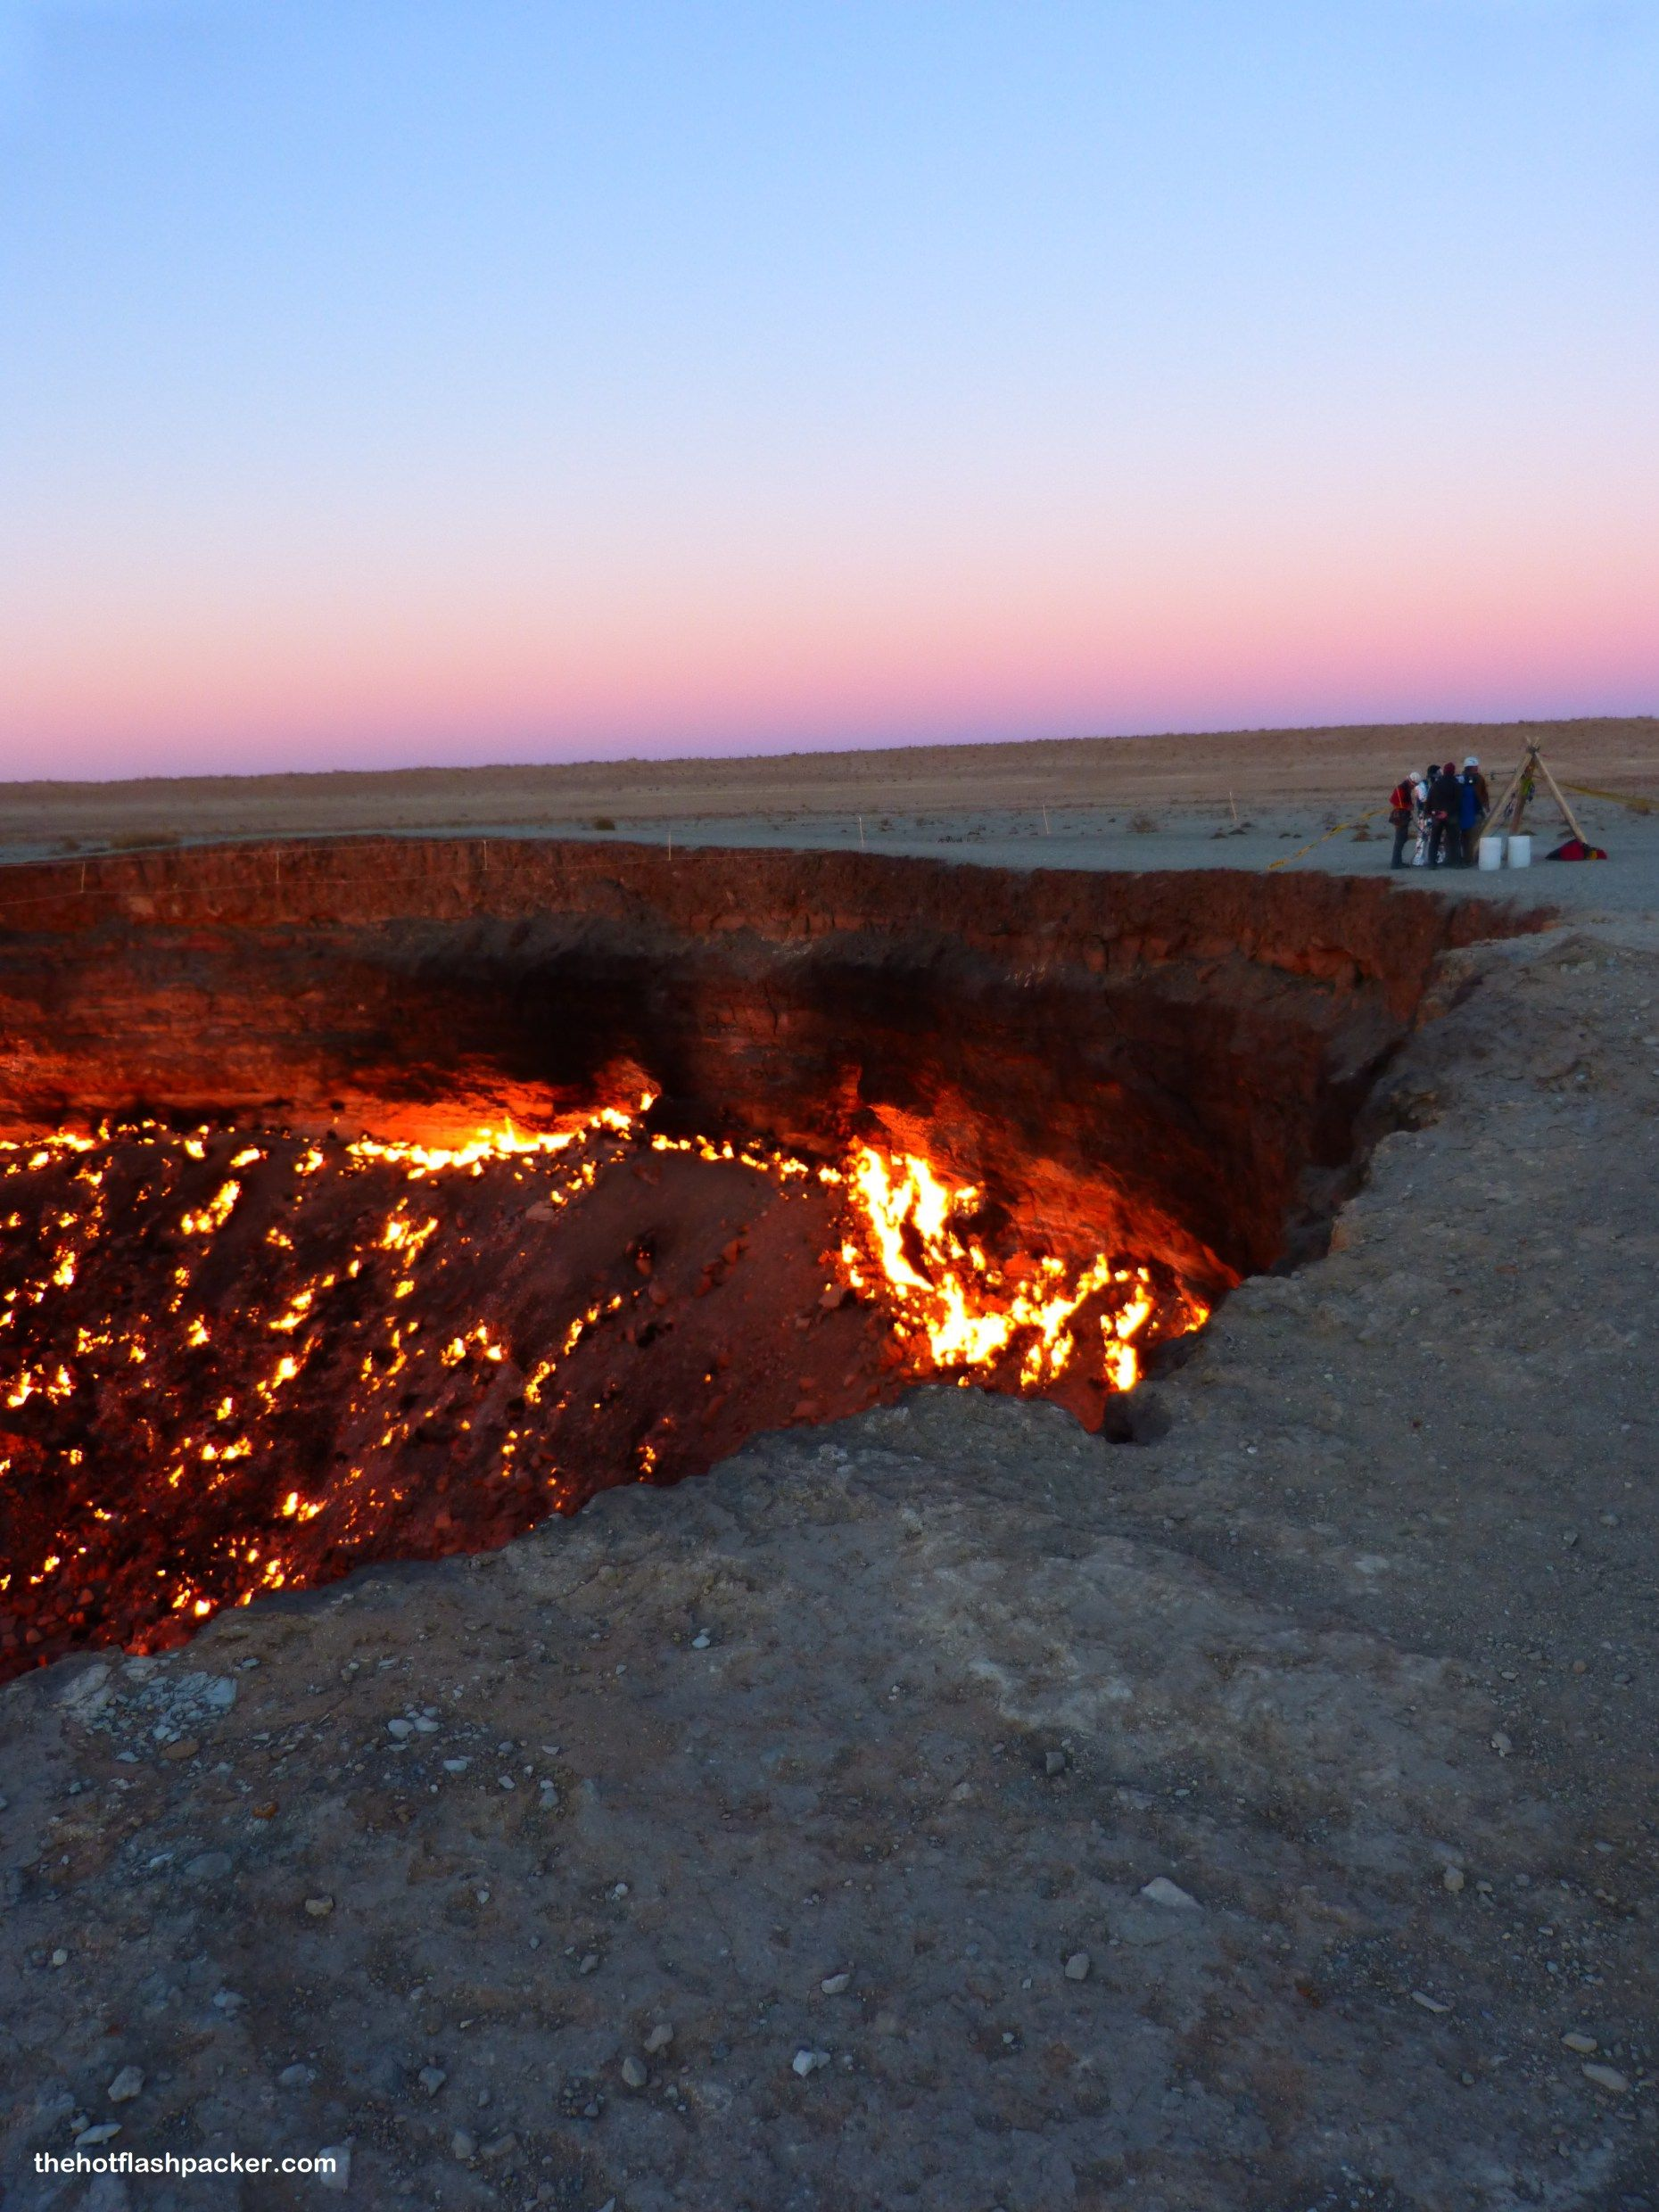 d6a2a7389 Darvaza Gas Crater (Fire in the Hole!) | Places | In the hole, The ...